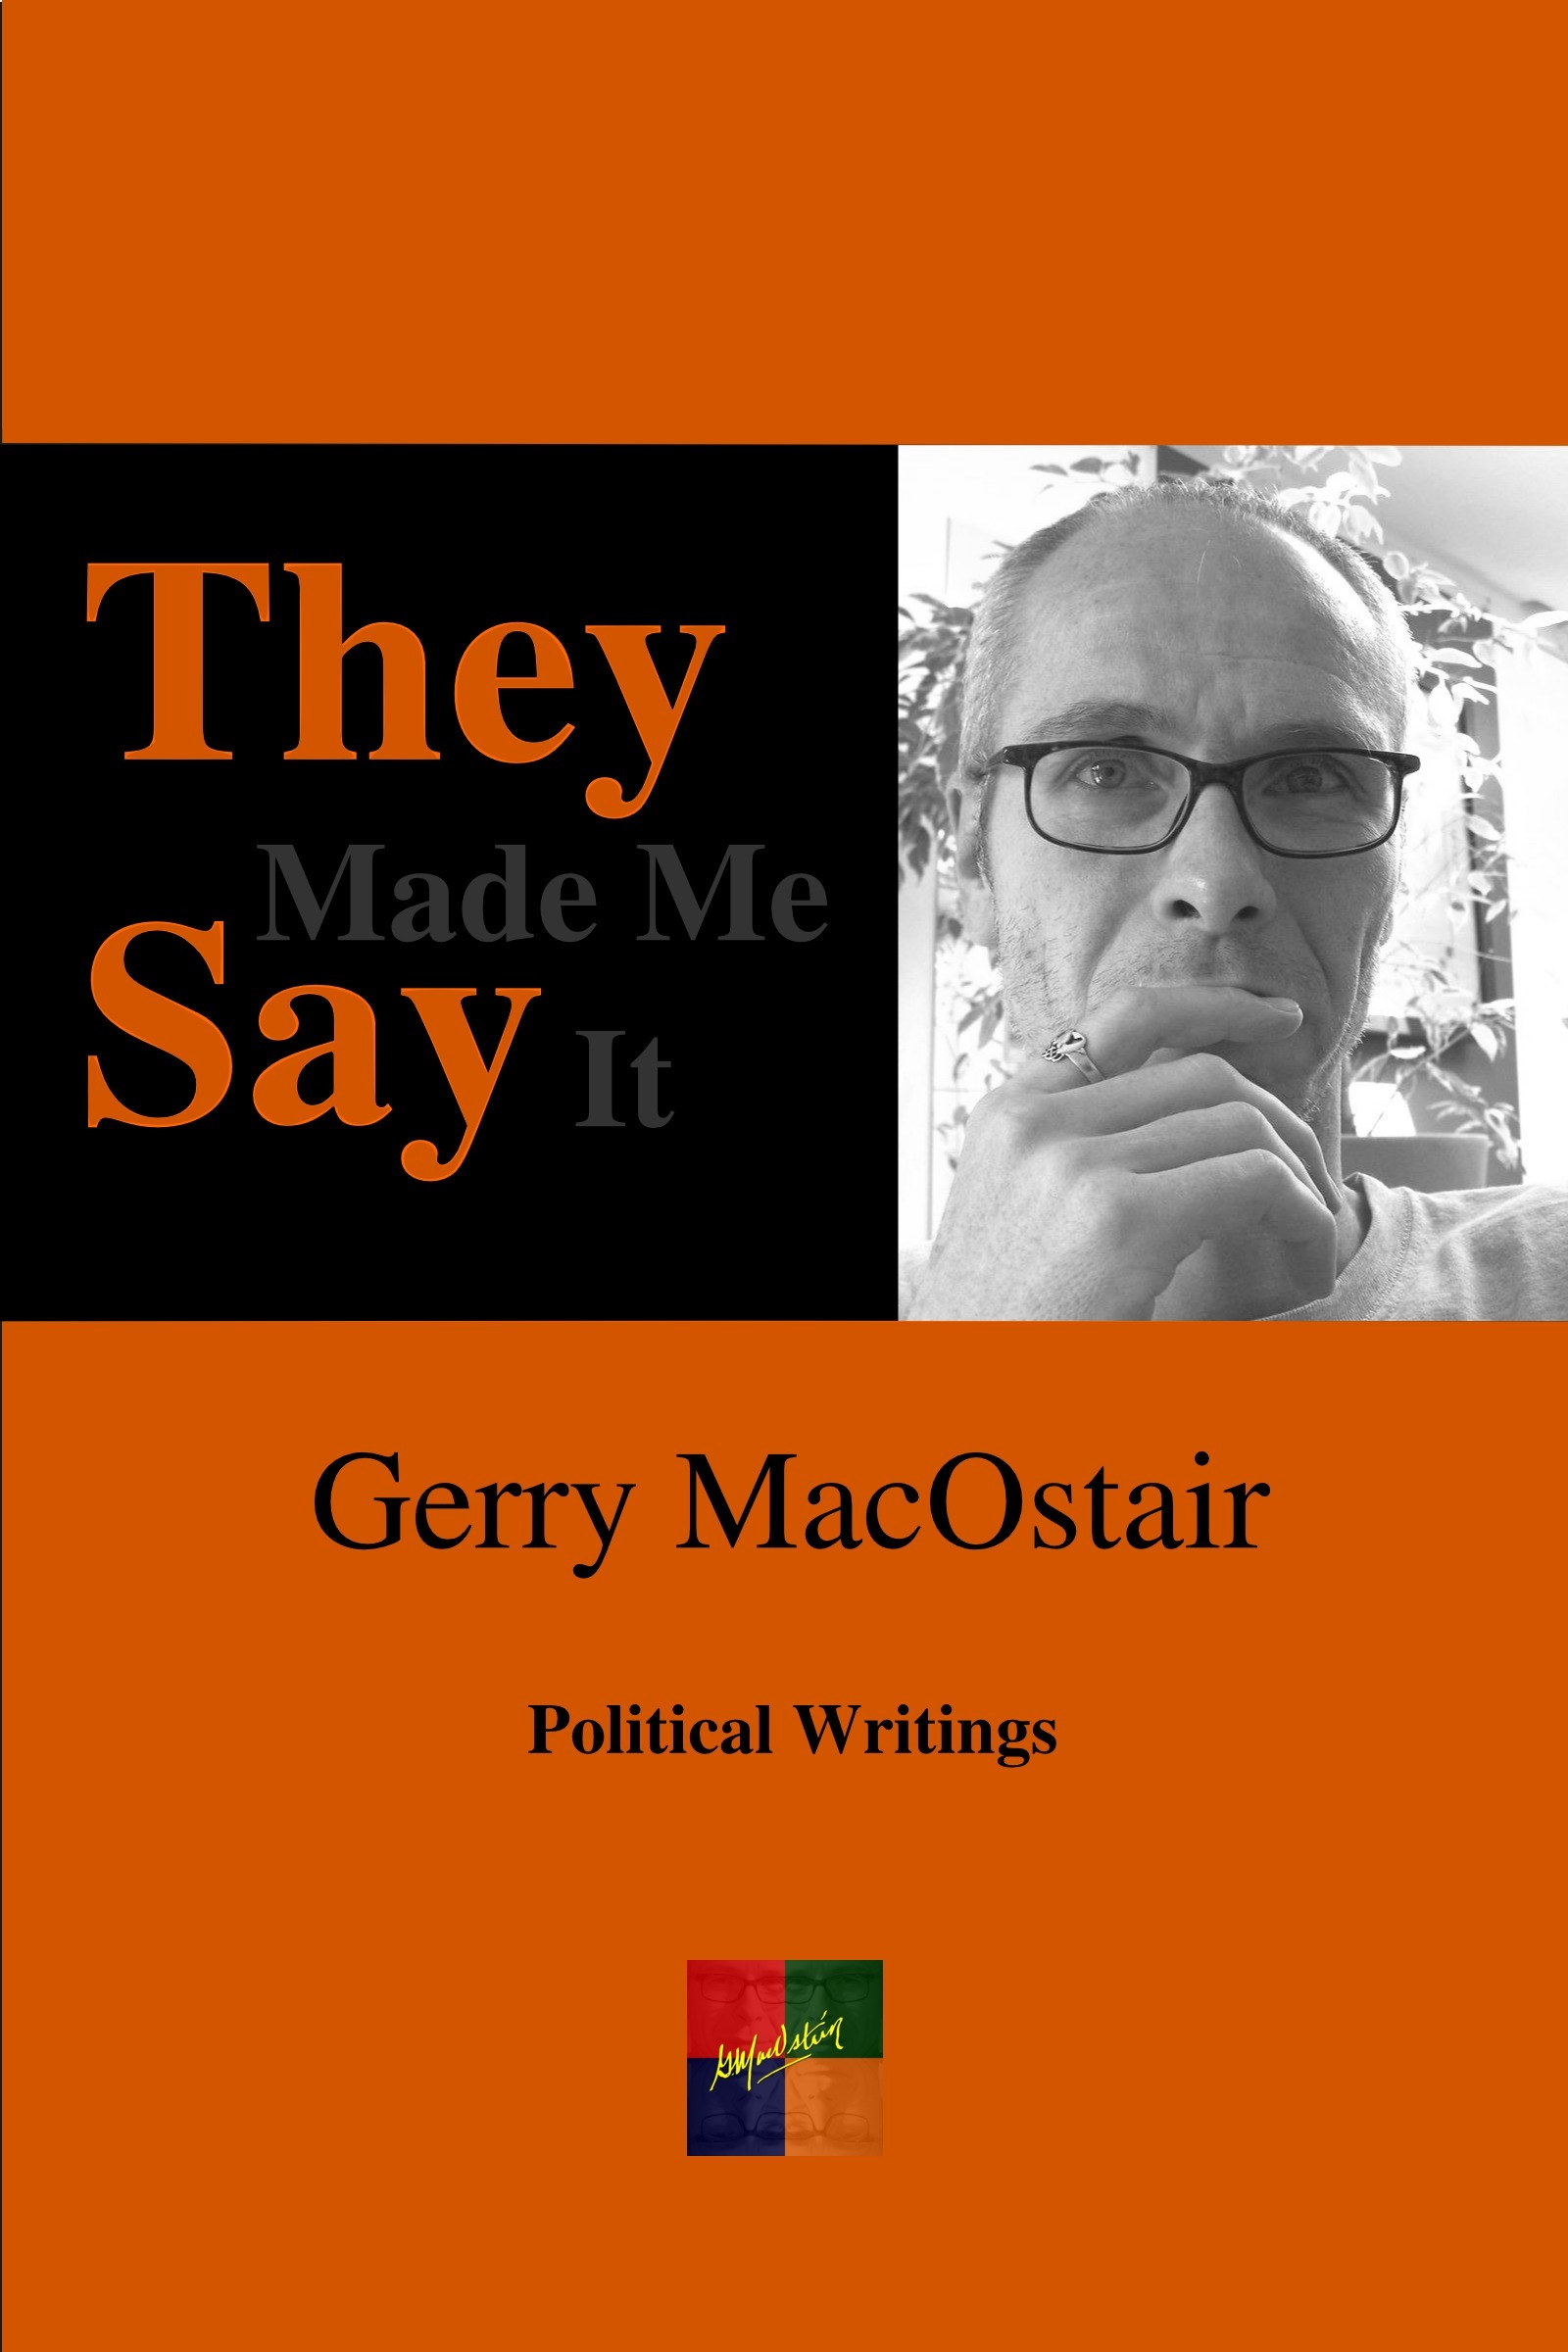 They Made Me Say It  by  Gerry MacOstair